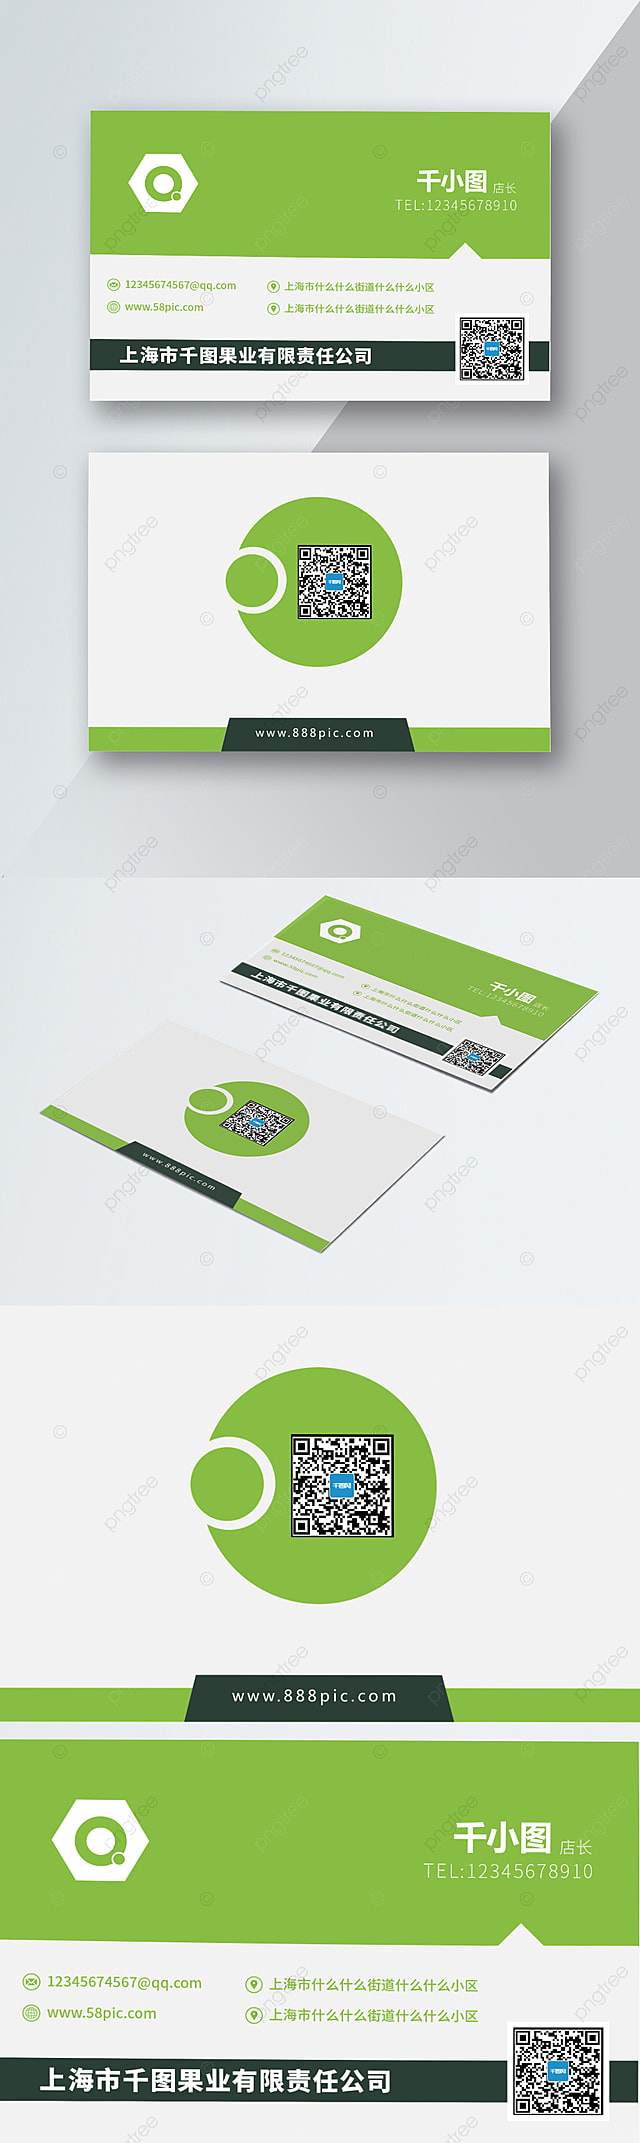 Agriculture Business Card Templates Free Download In 2020 Free Business Card Templates Business Card Templates Download Card Templates Free